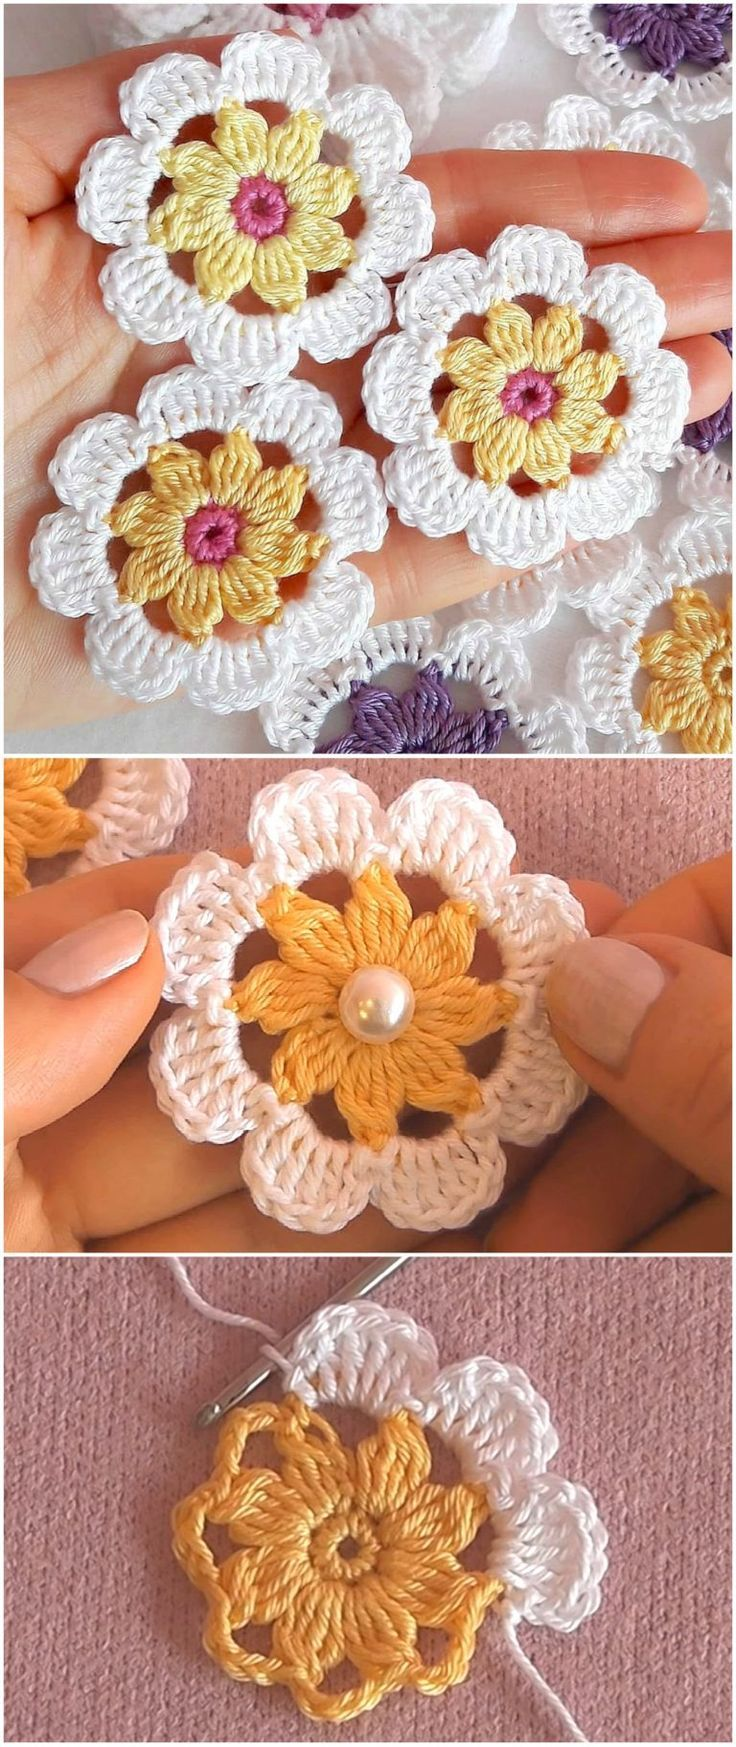 Pin By Delorse Justus On Yarn Love Community Pinboard Pinterest Rose Flower Diagram Crochet Flowers 4 And Patterns